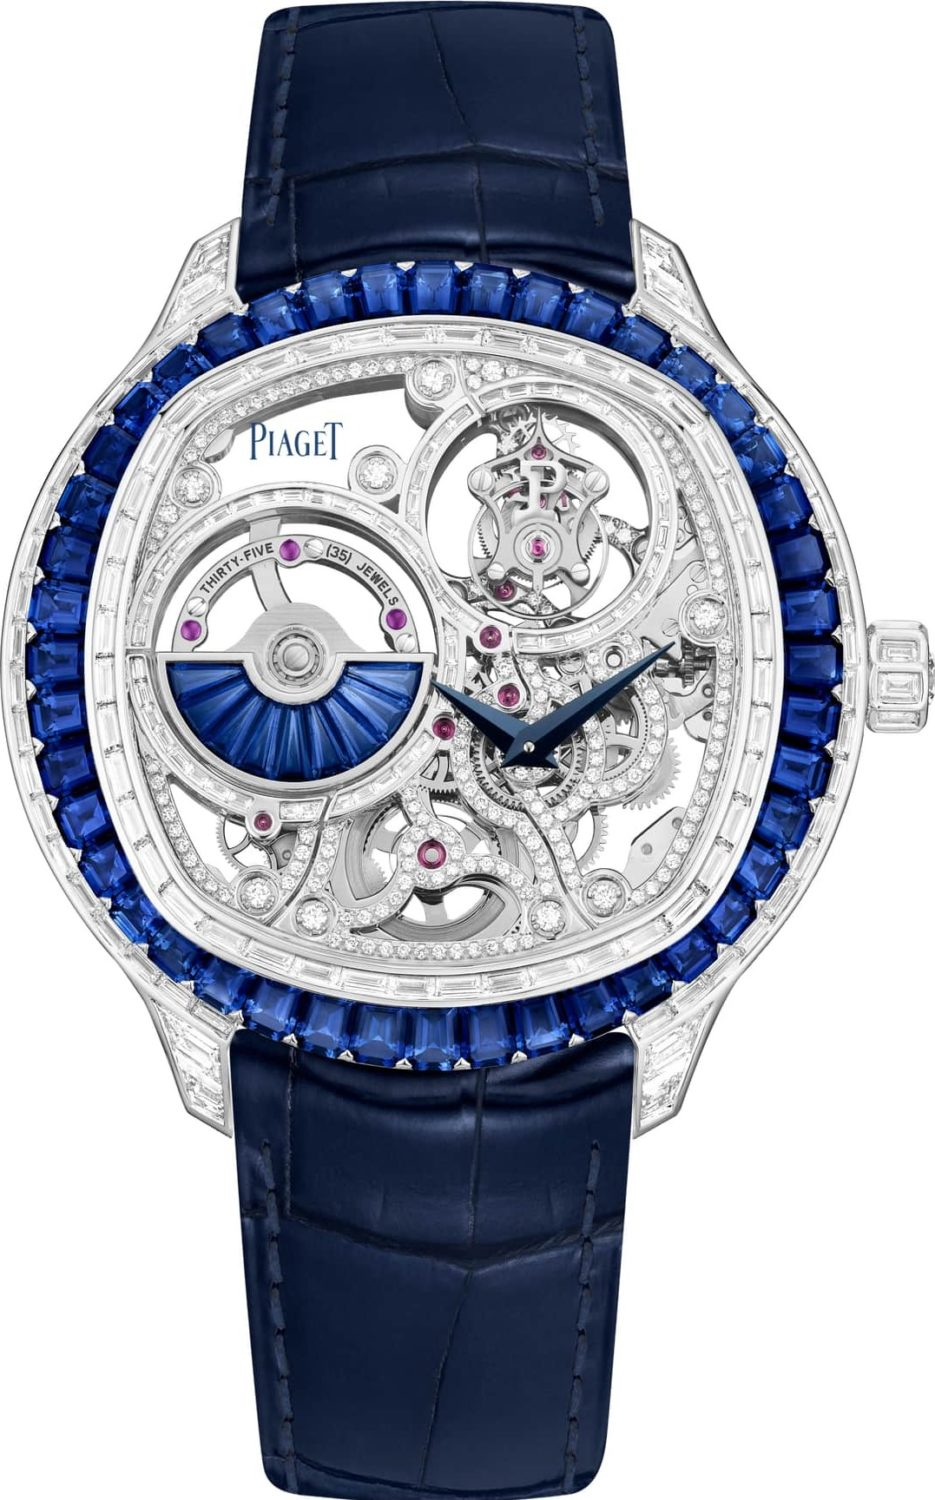 The Piaget Polo exceptional timepieces epitomize daring creativity